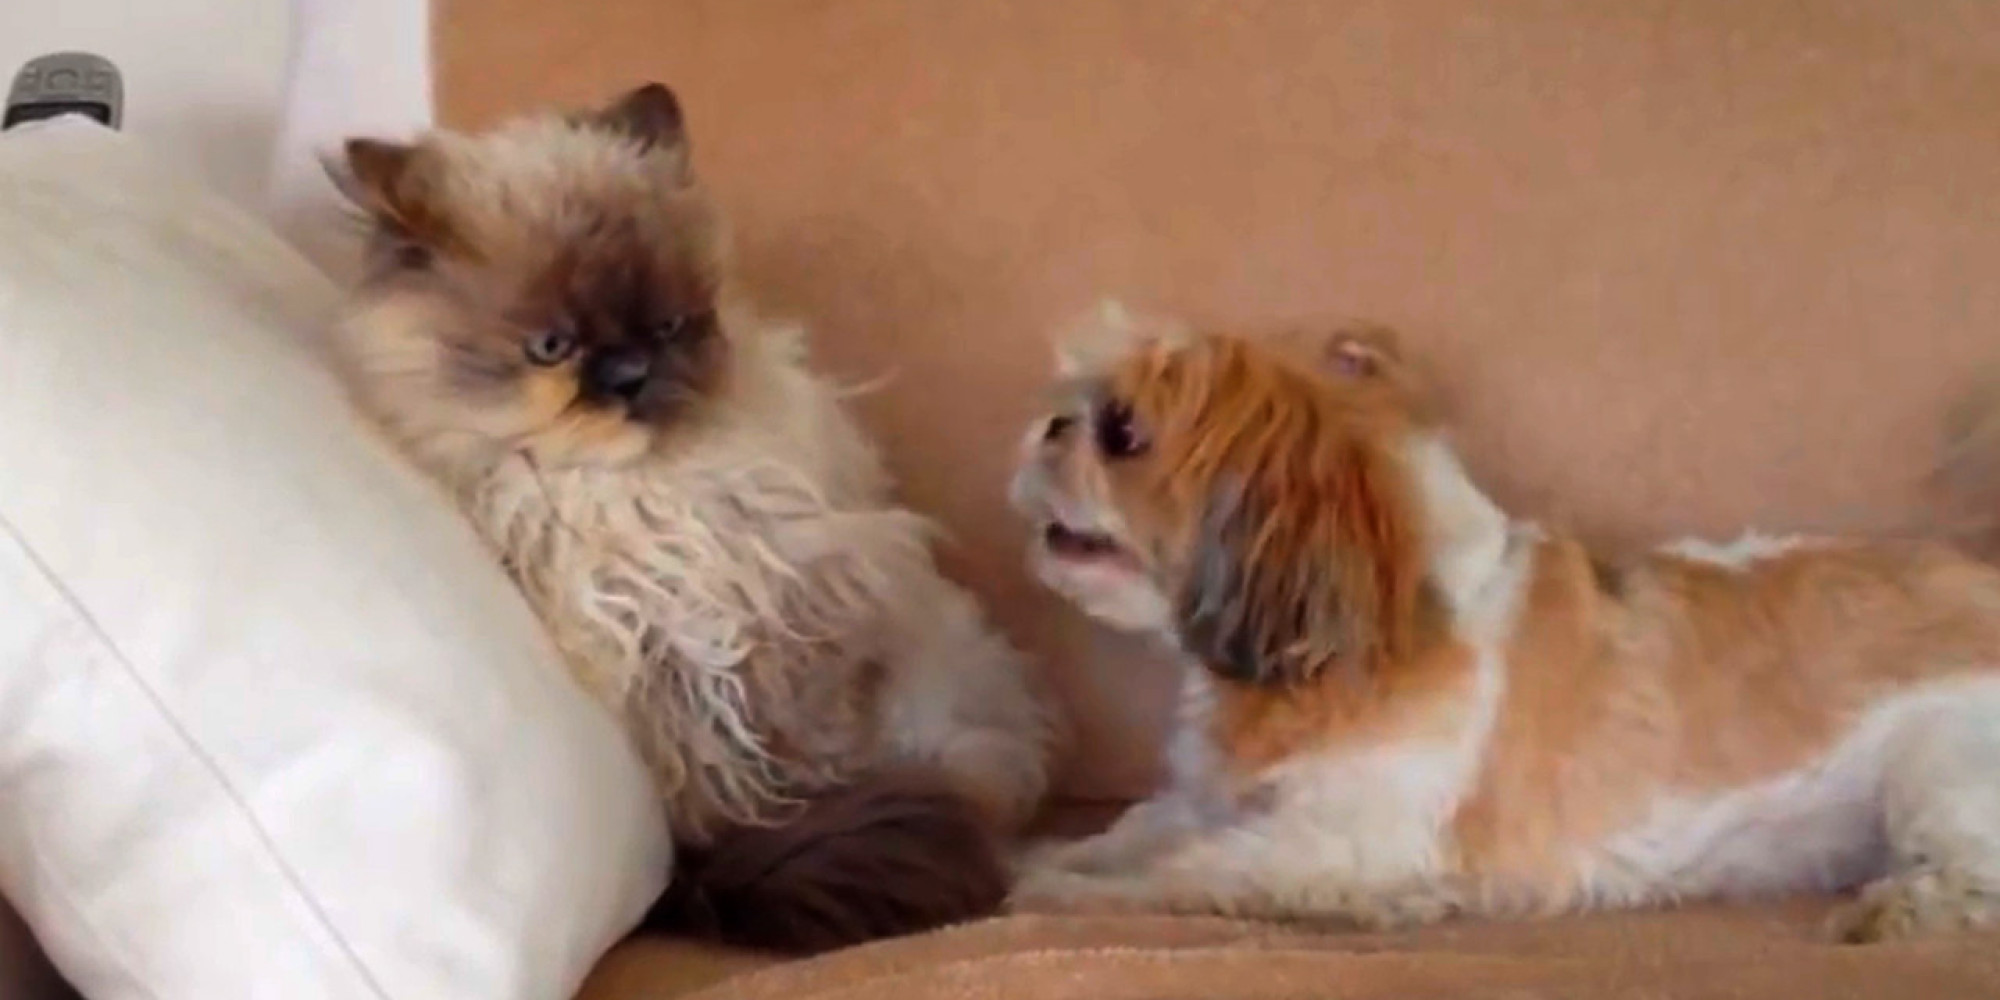 Heres Proof That Dogs Just Desperately Want To Be Friends With - Dogs annoying cats with friendship